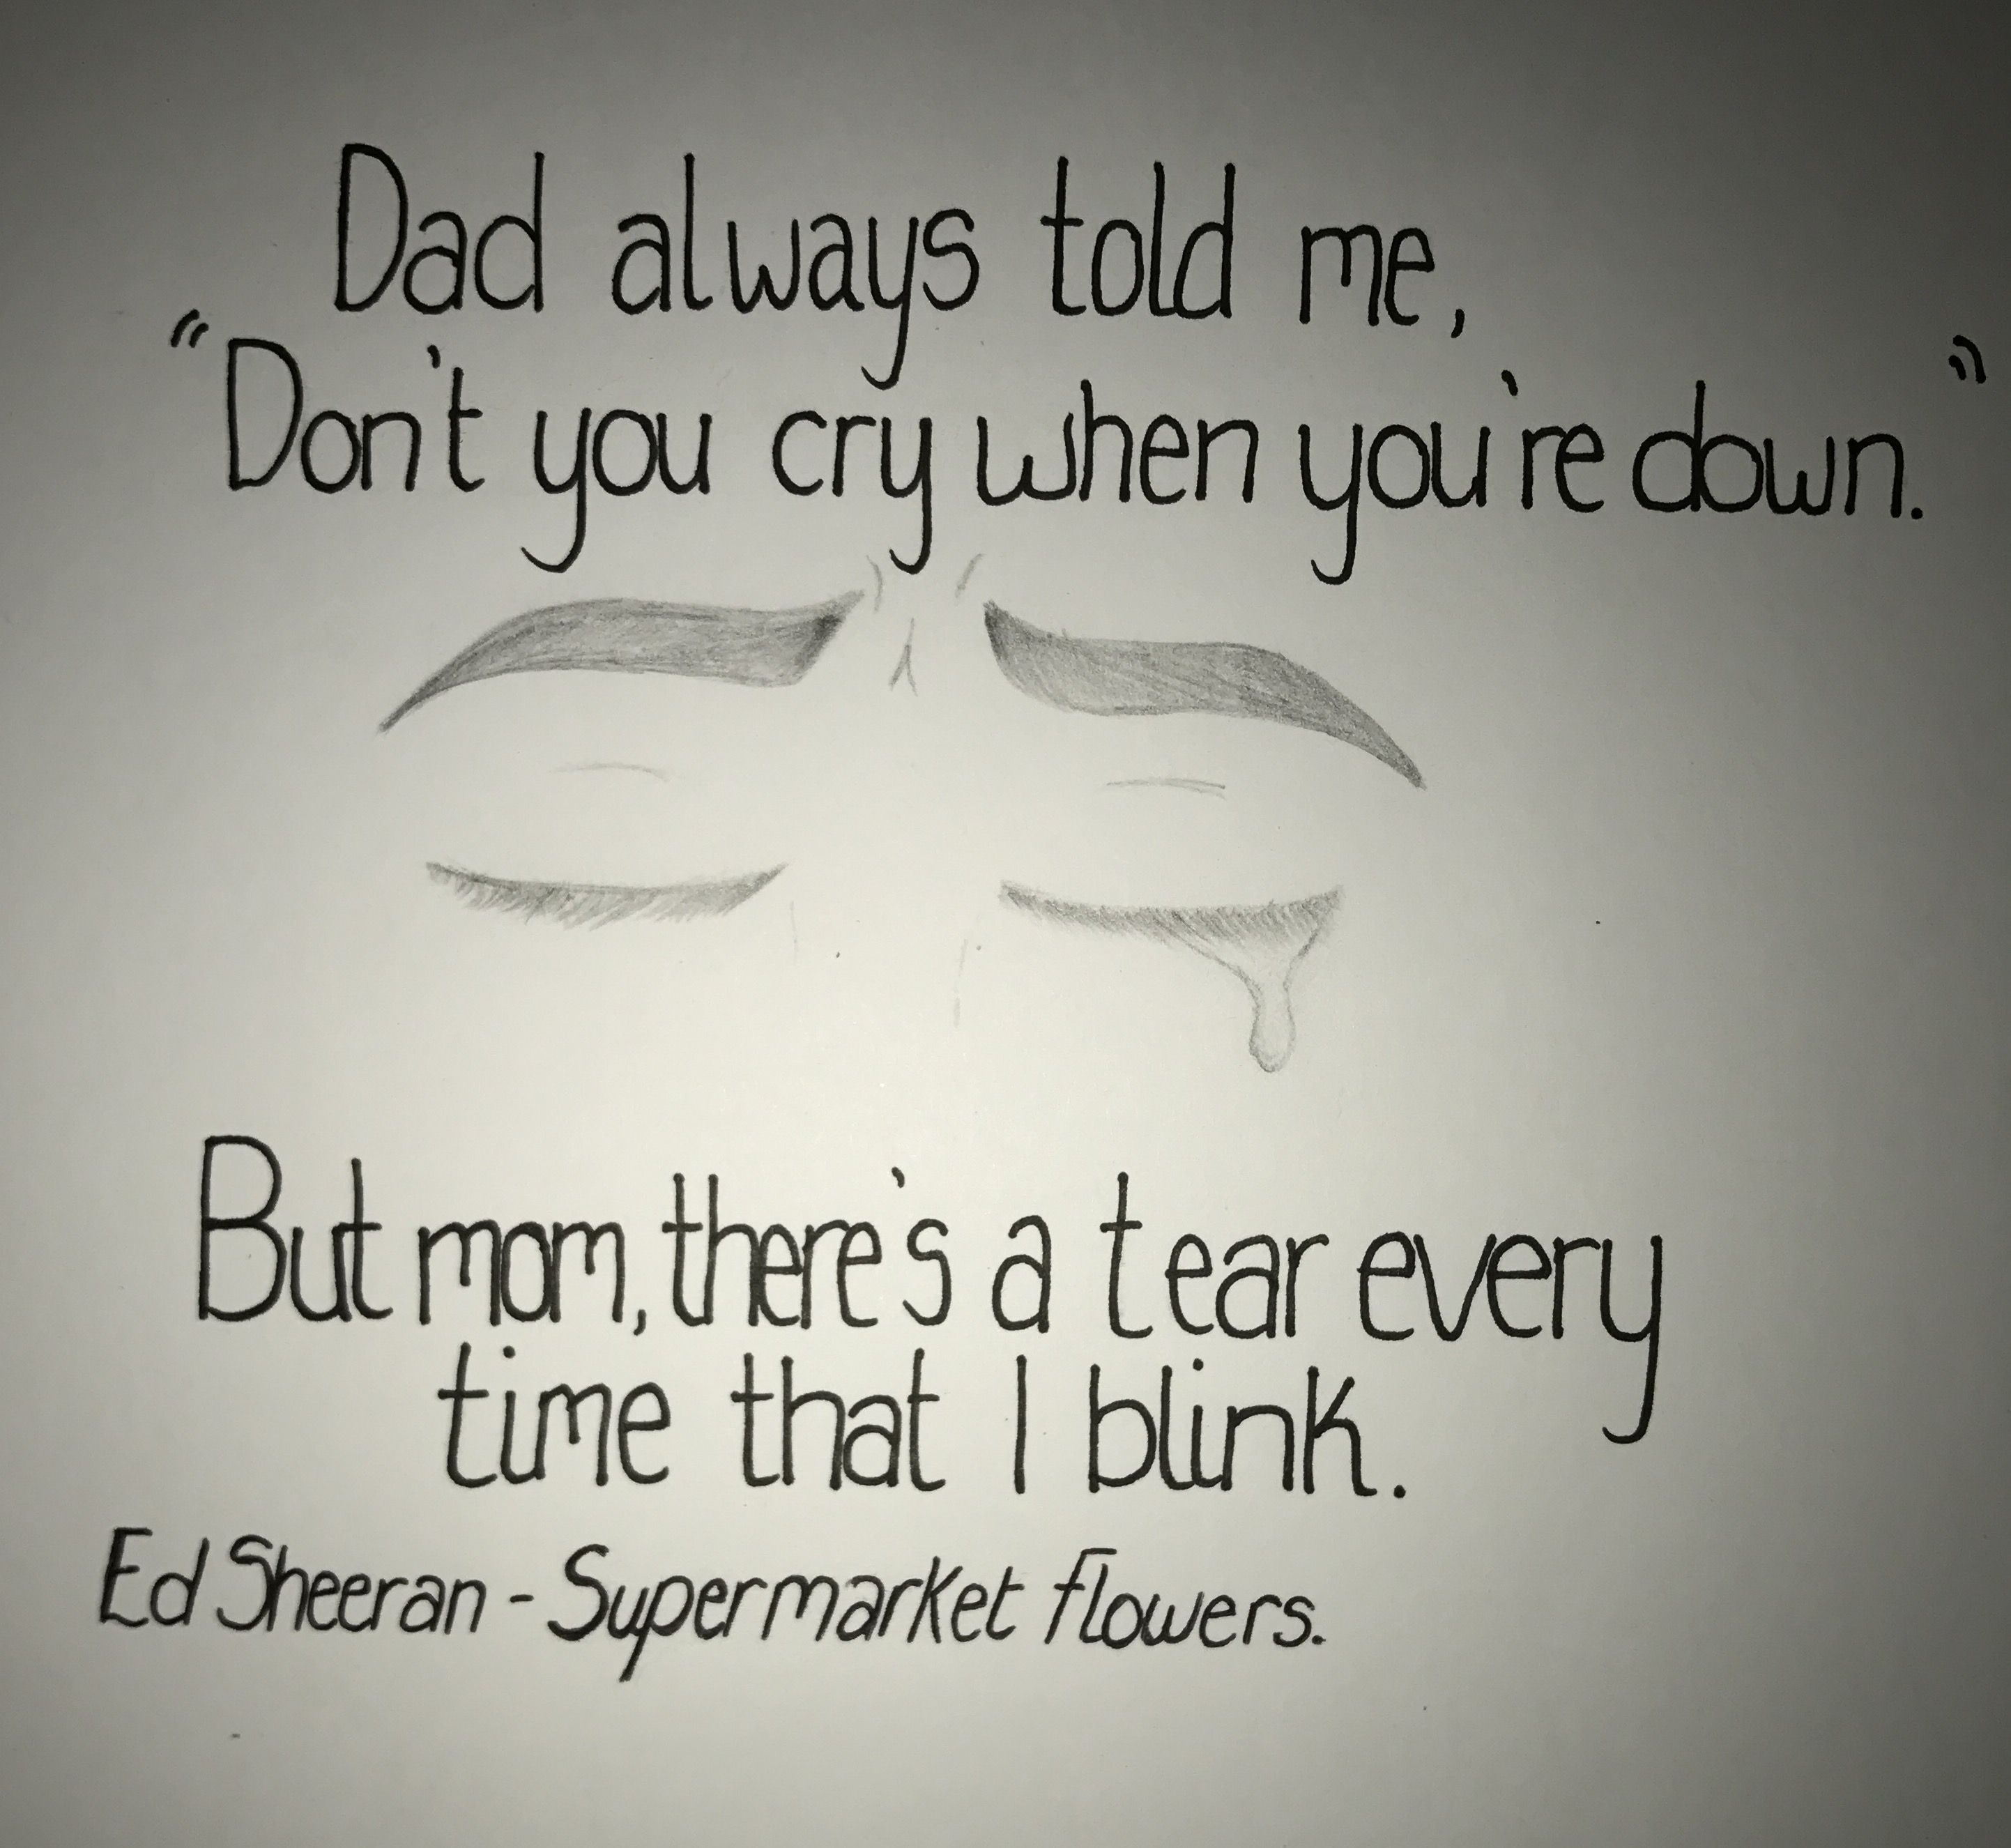 Supermarket Flowers Ed Sheeran Ed sheeran lyrics, Song